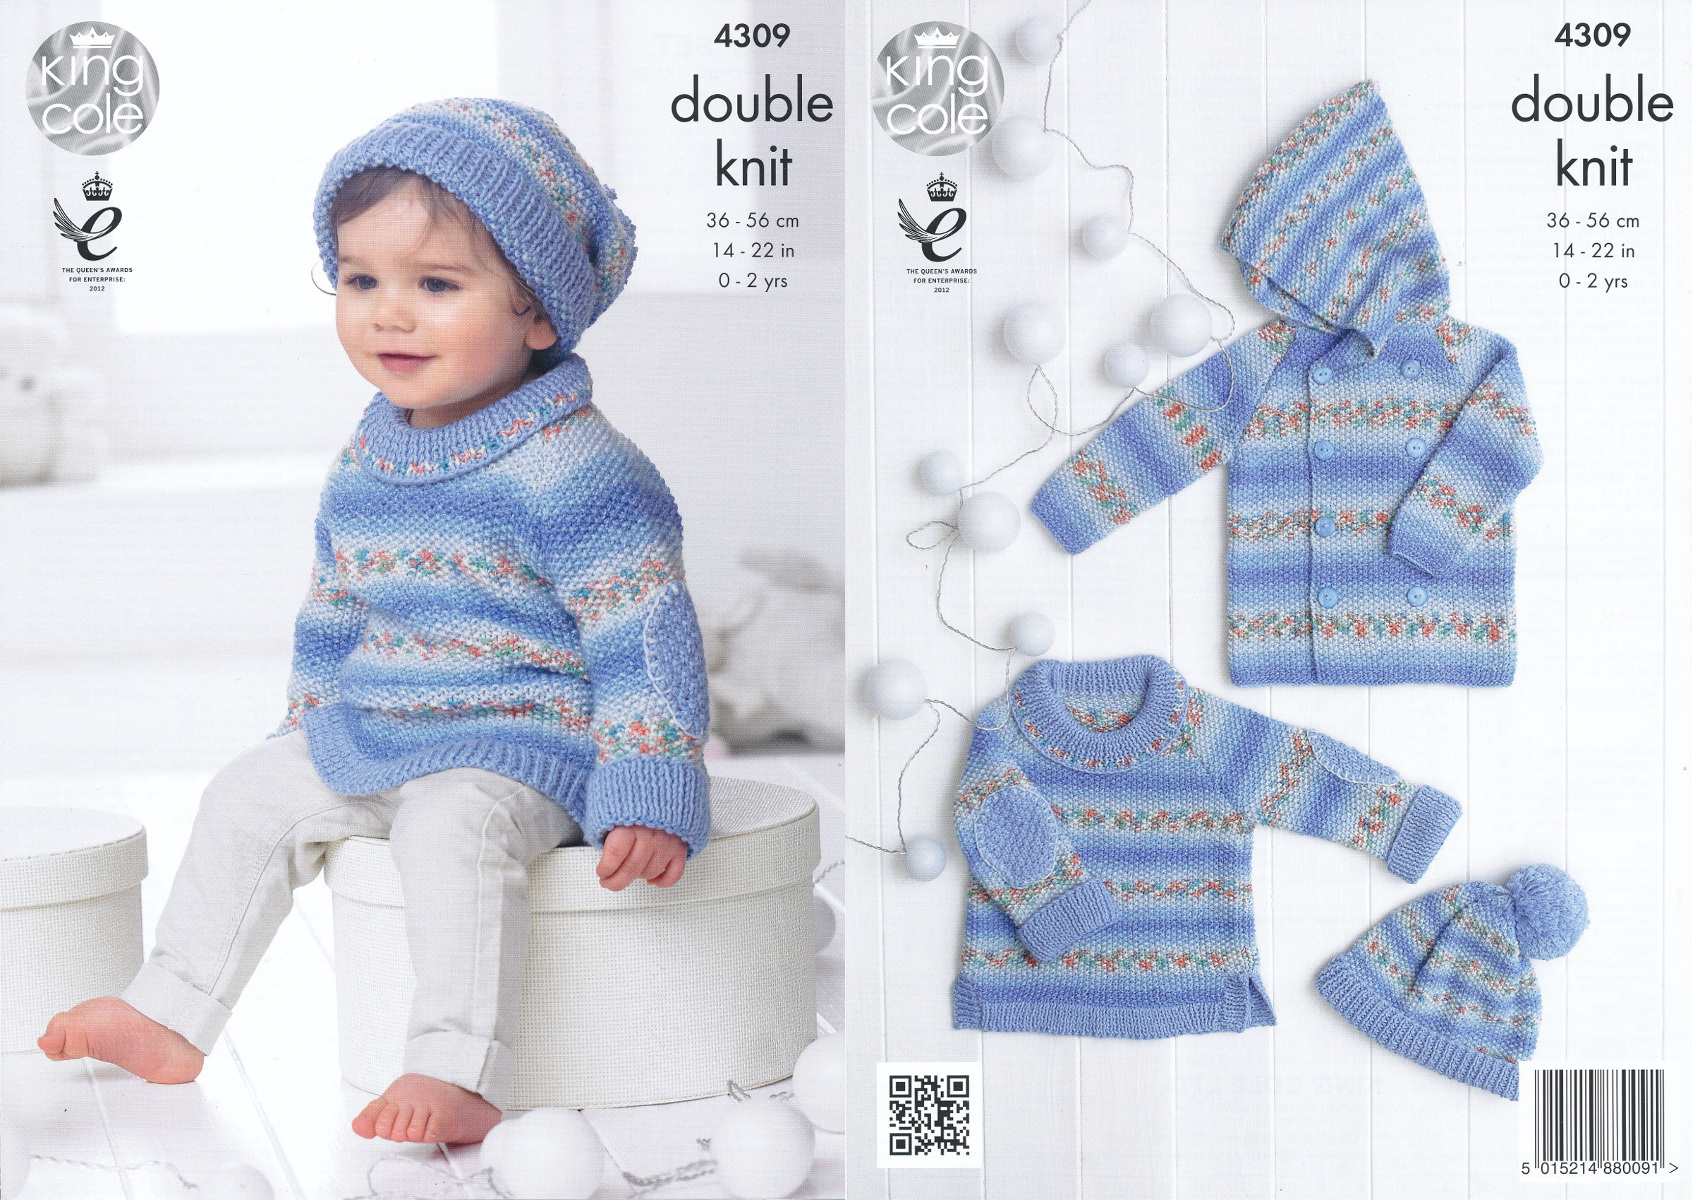 Baby drifter dk knitting pattern king cole sweater jumper jacket baby drifter dk knitting pattern king cole sweater jumper jacket hat set 4309 bankloansurffo Gallery